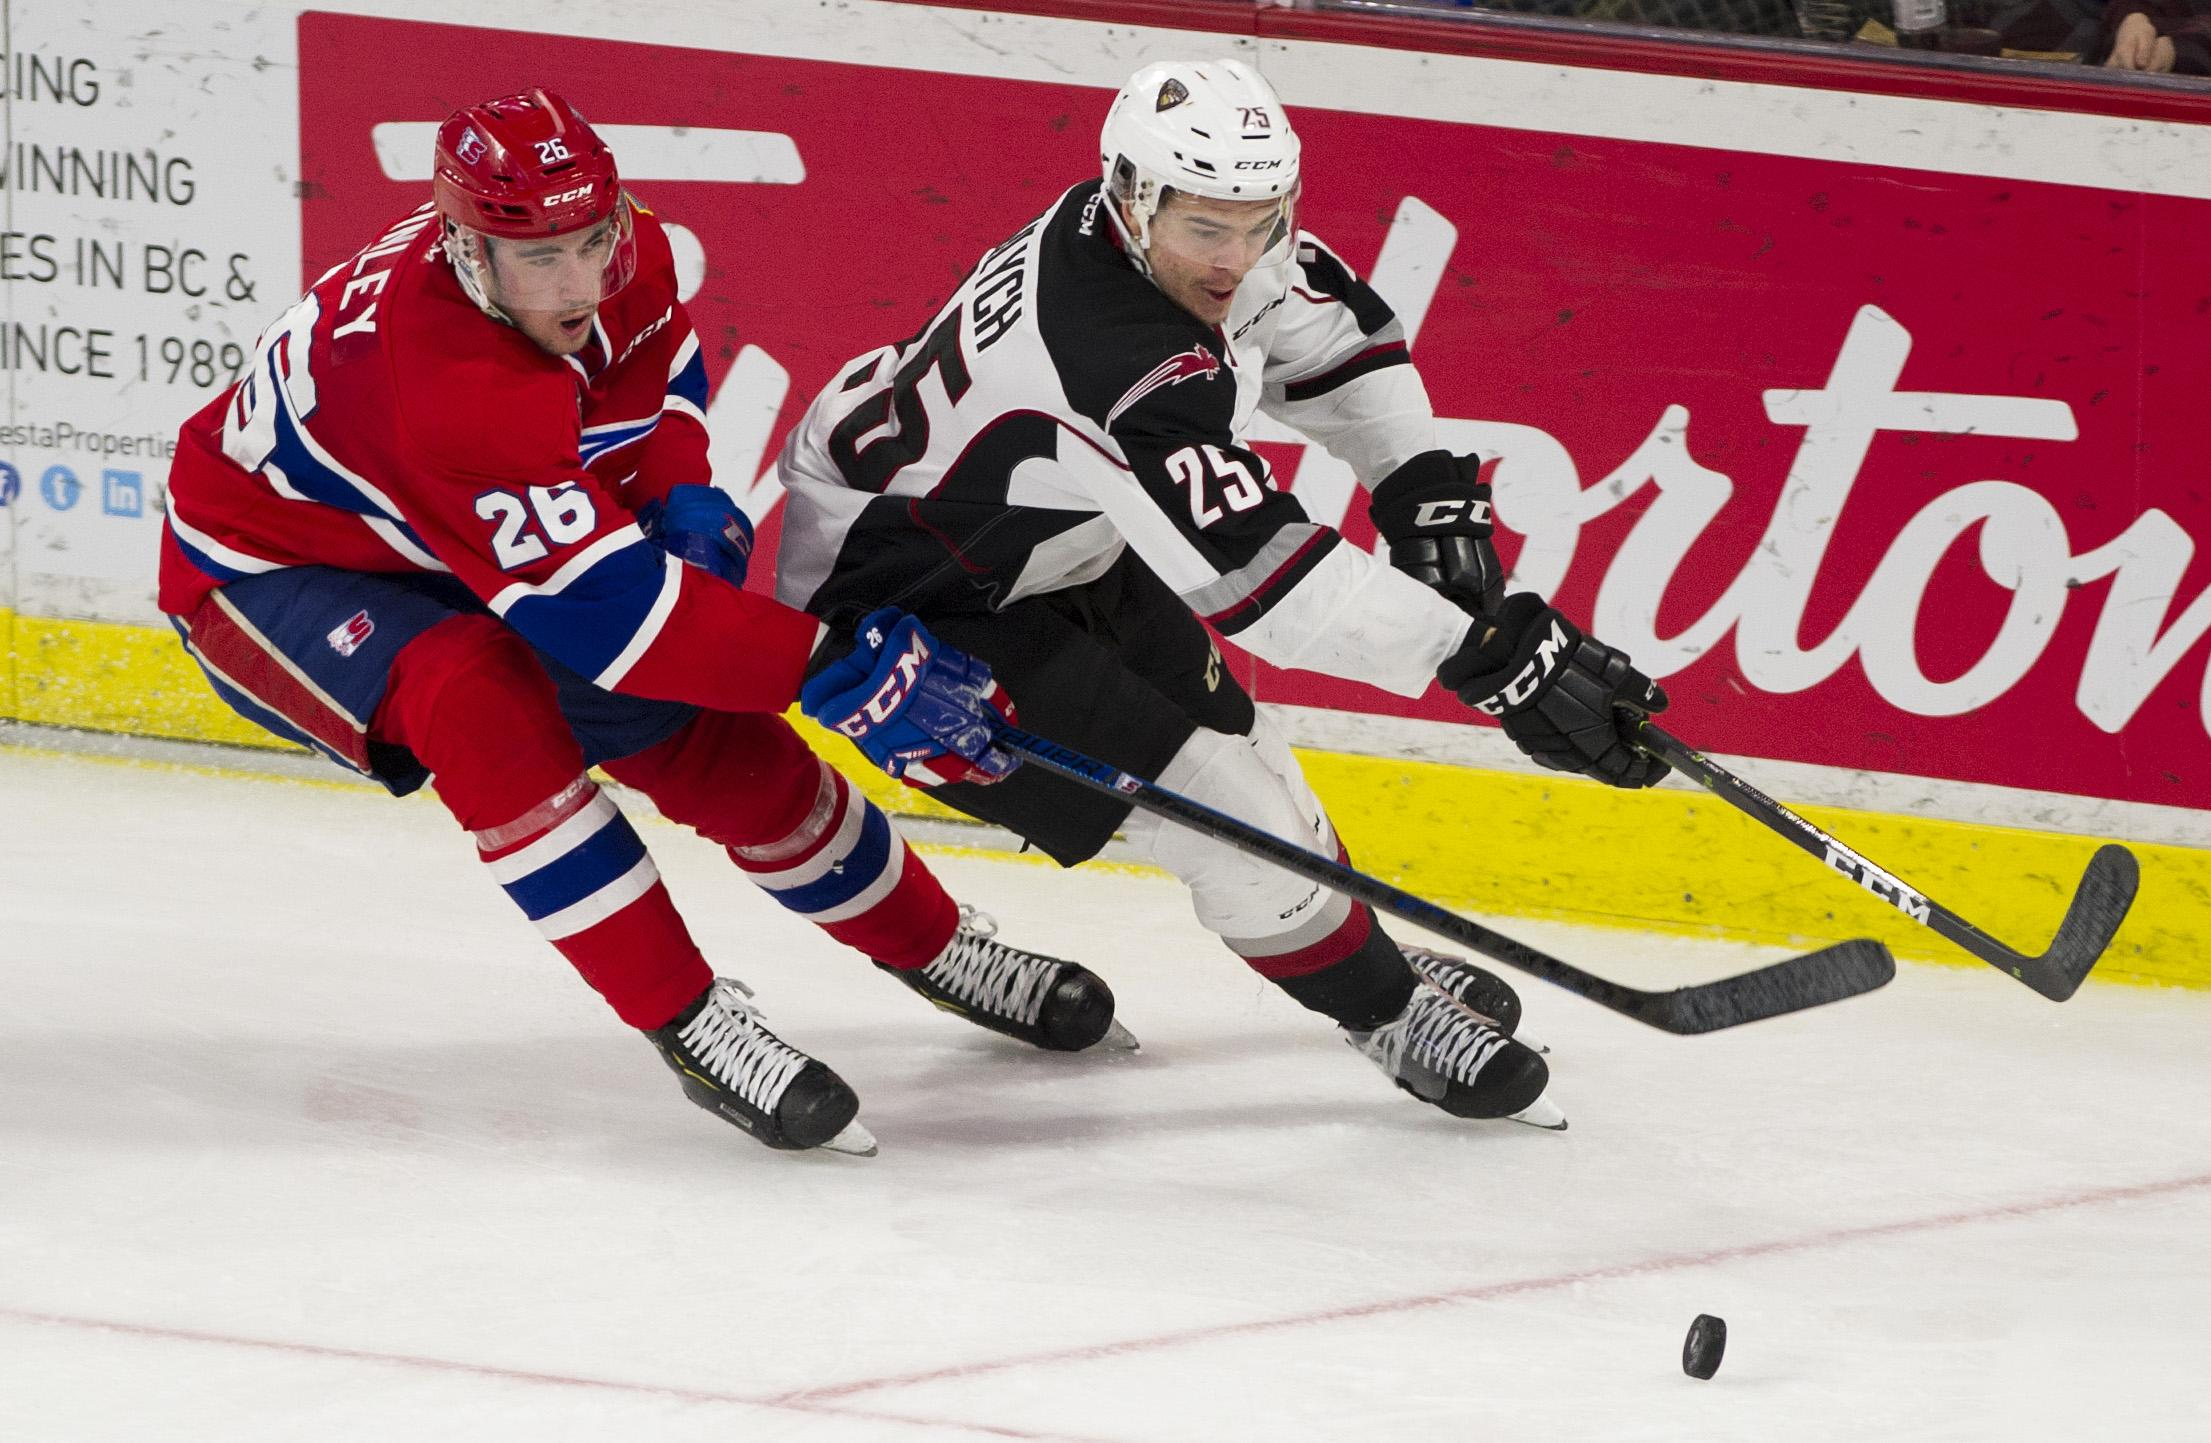 Comeback Falls Short As Spokane Chiefs Ousted From Whl Playoffs